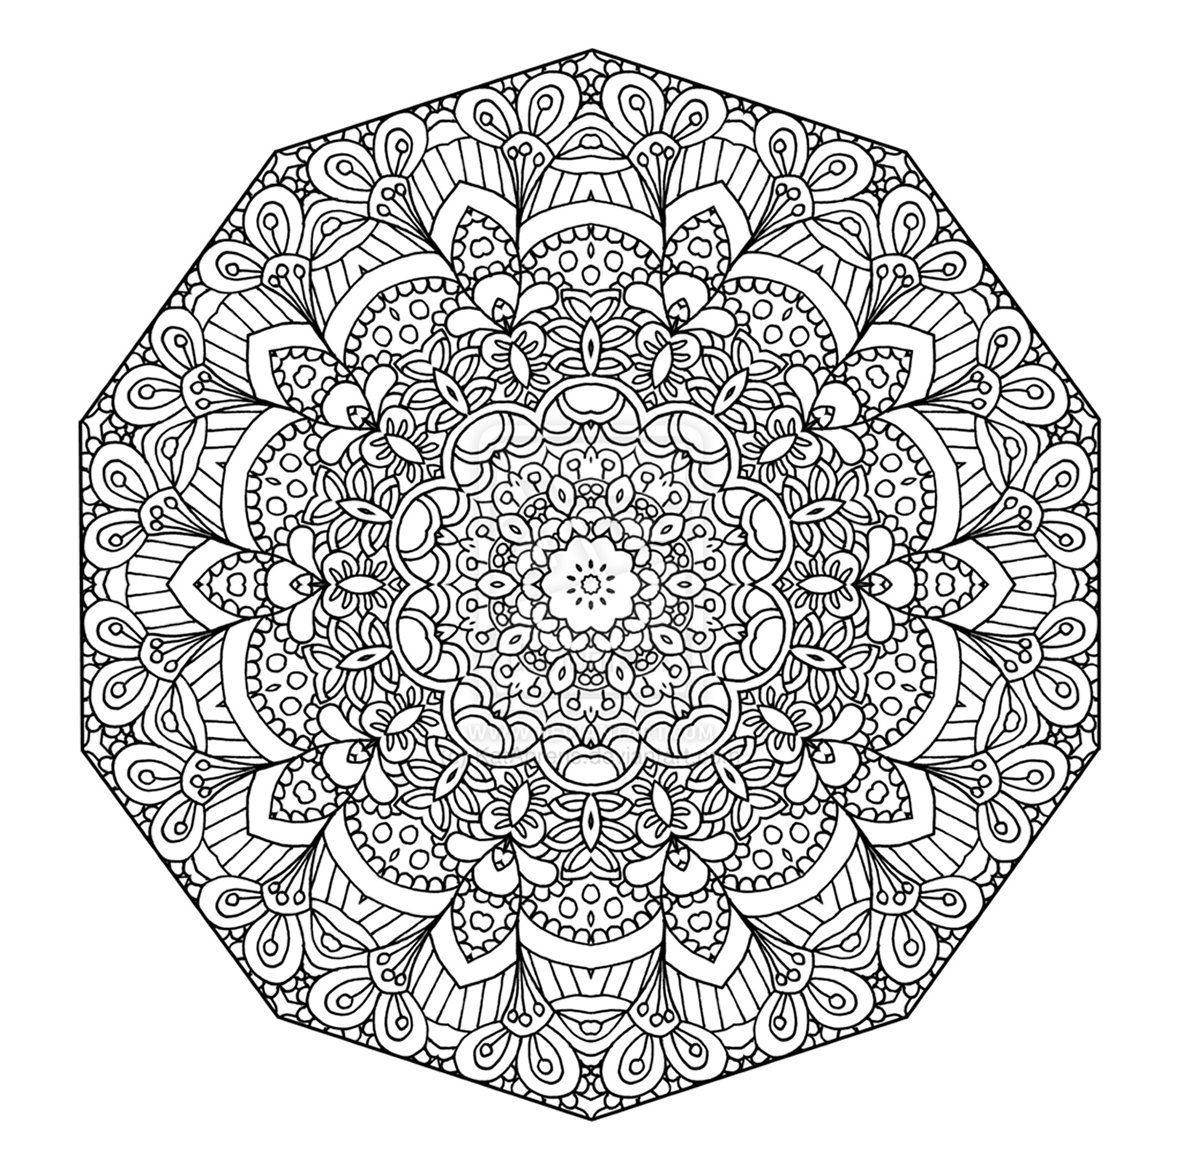 hard mandala coloring pages complex mandala with vegetal and floral elements very pages hard mandala coloring